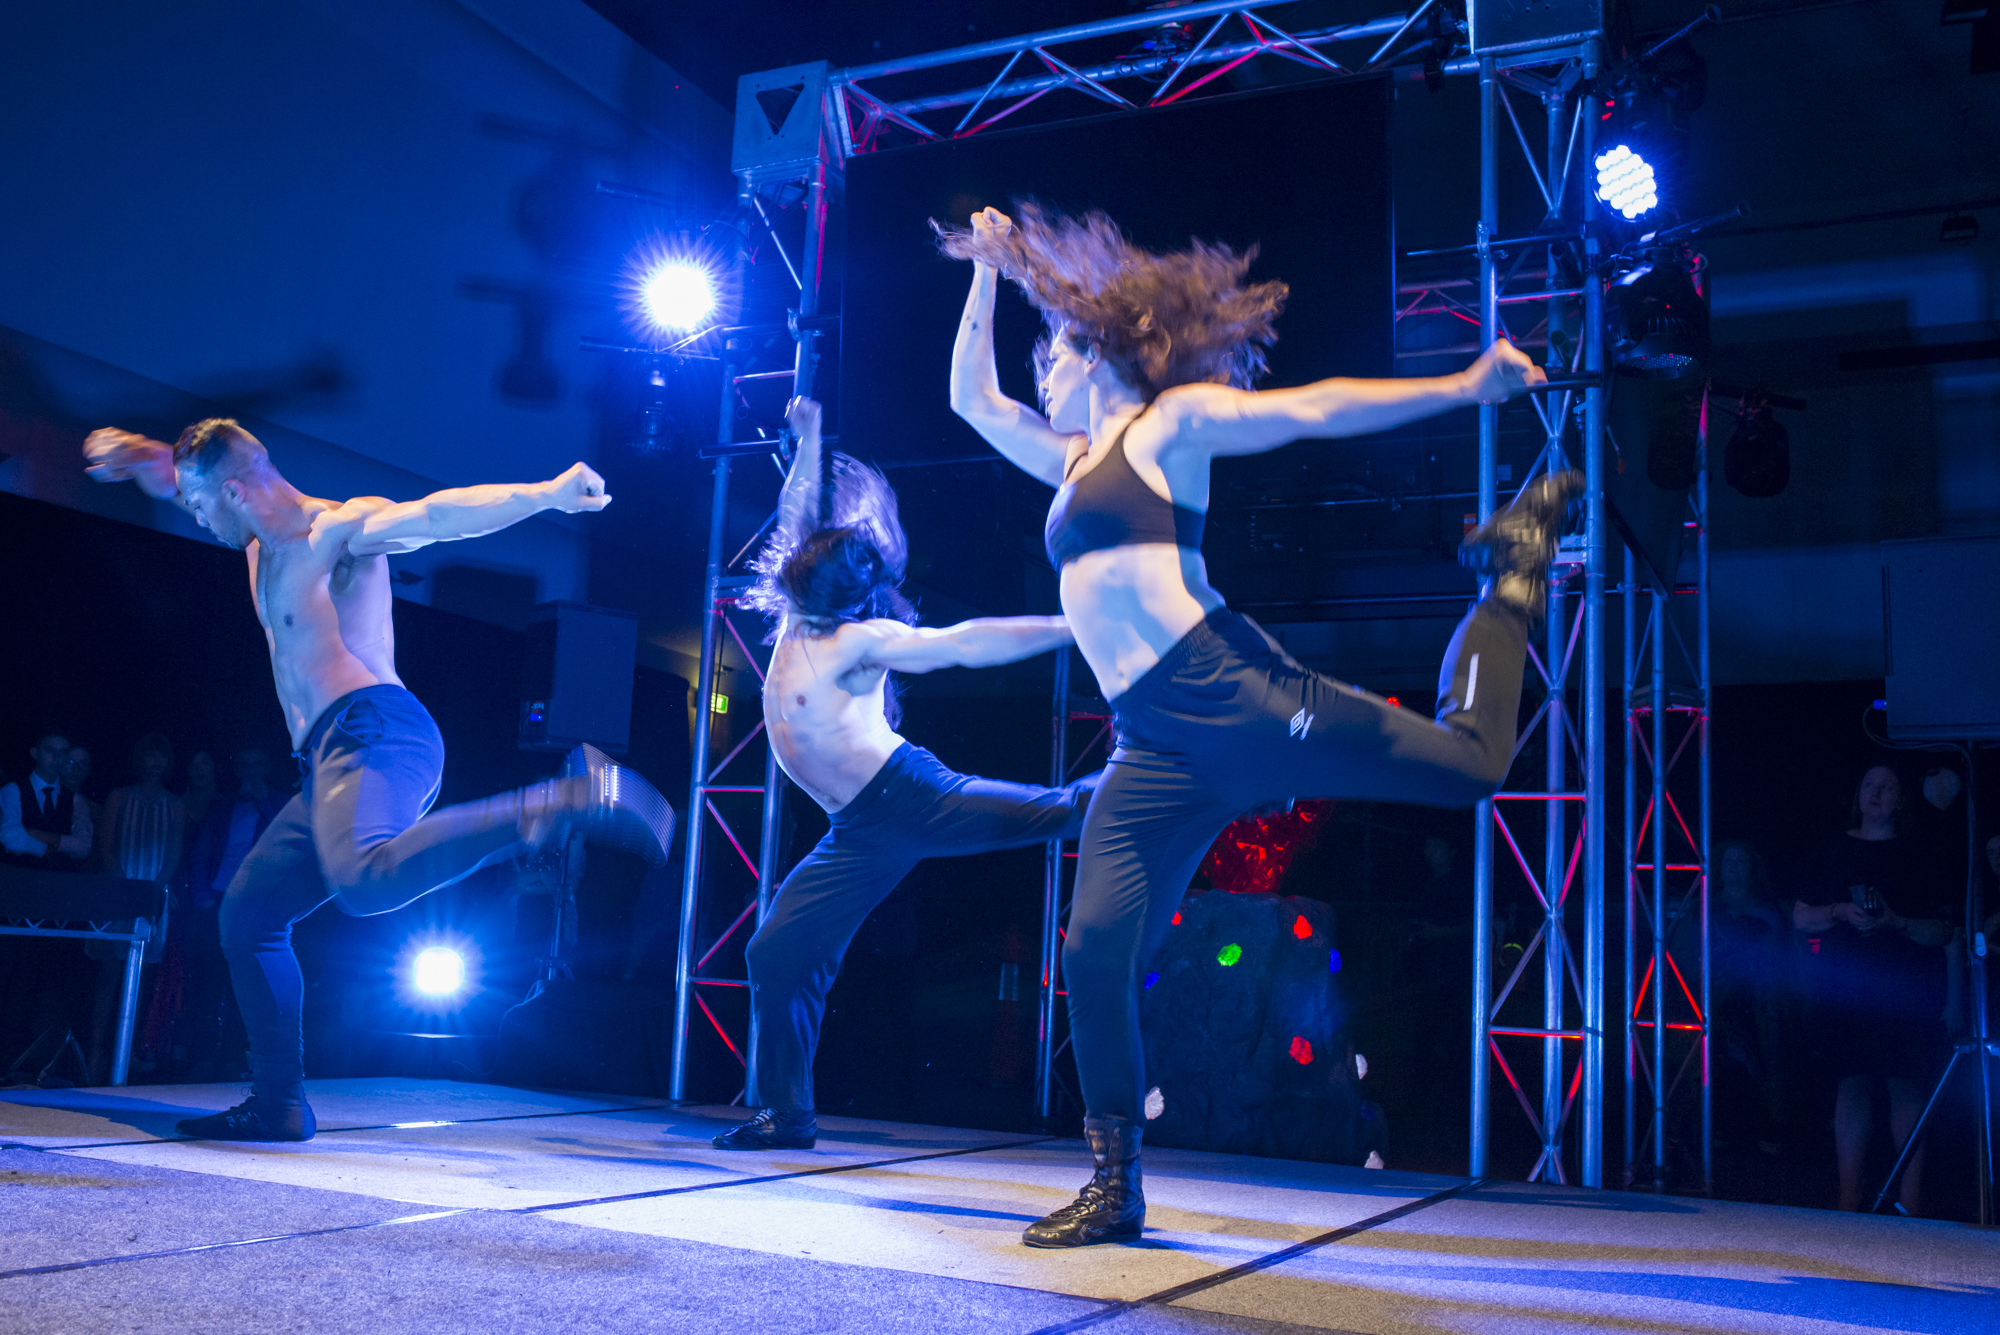 A little fill has made some parts of the dancers bodies sharp while still retaining movement to show the speed, move and vitality.